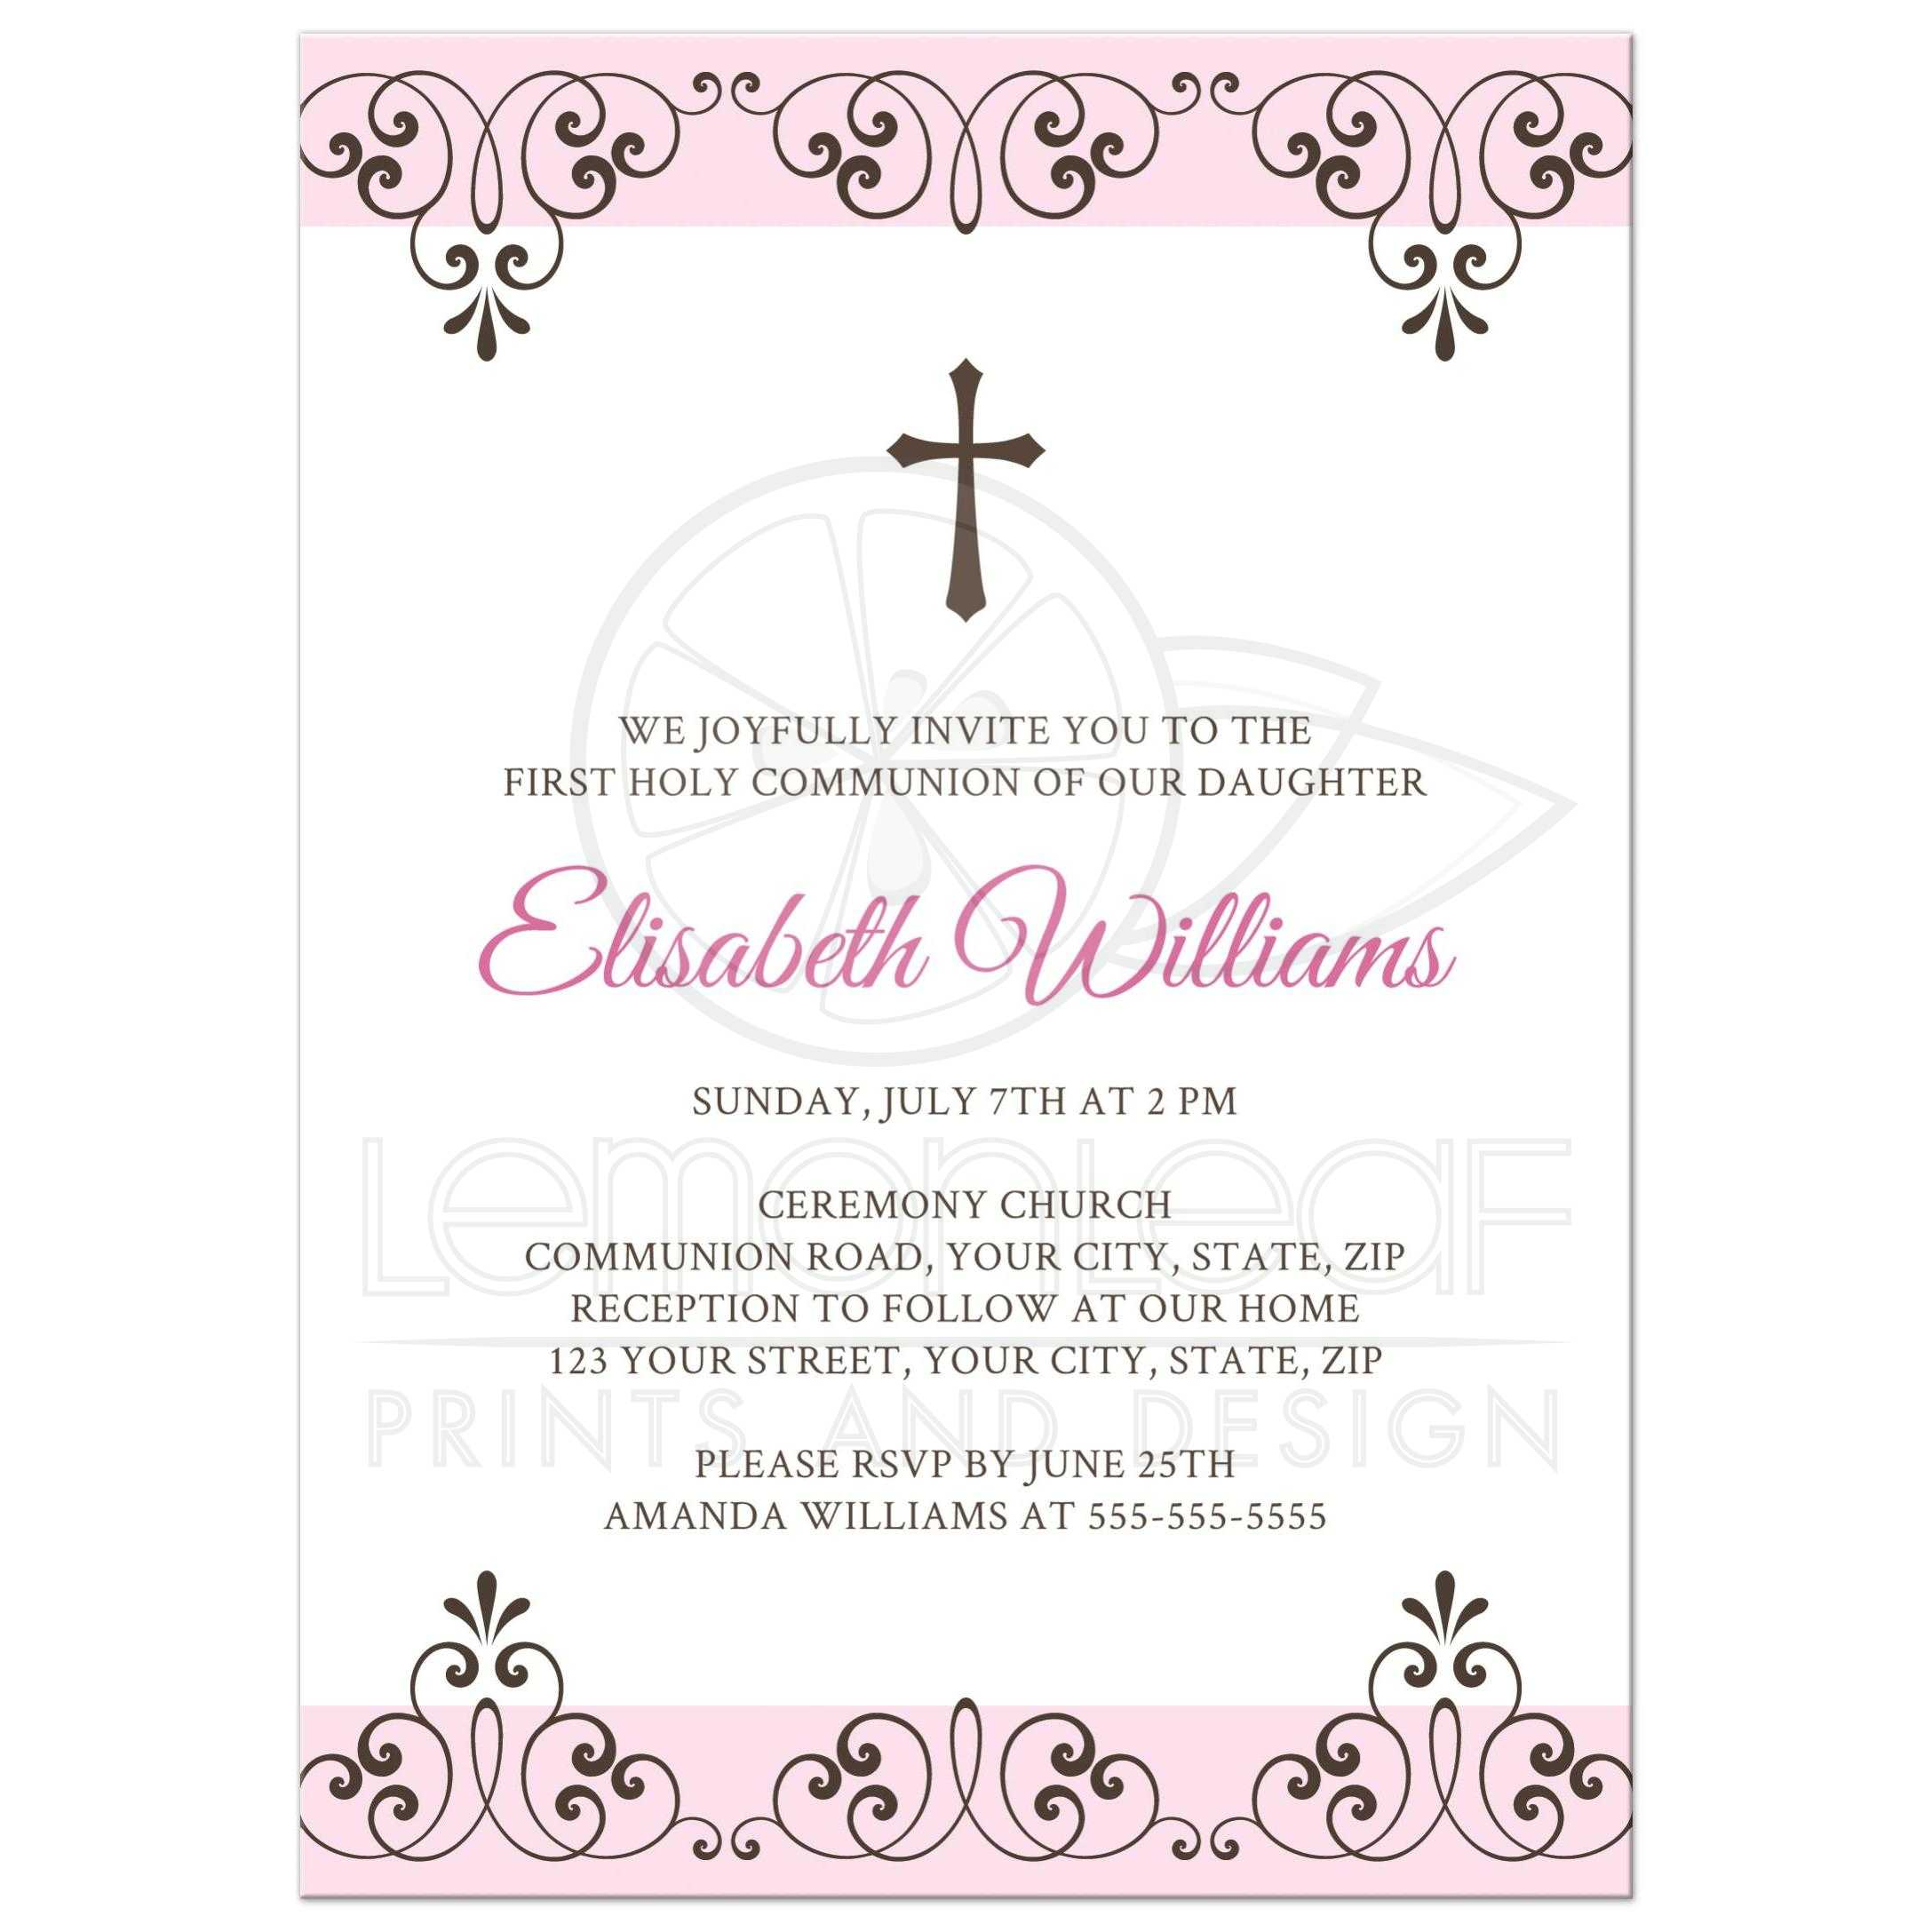 pink and brown first holy communion invitation with elegant lace damask borders